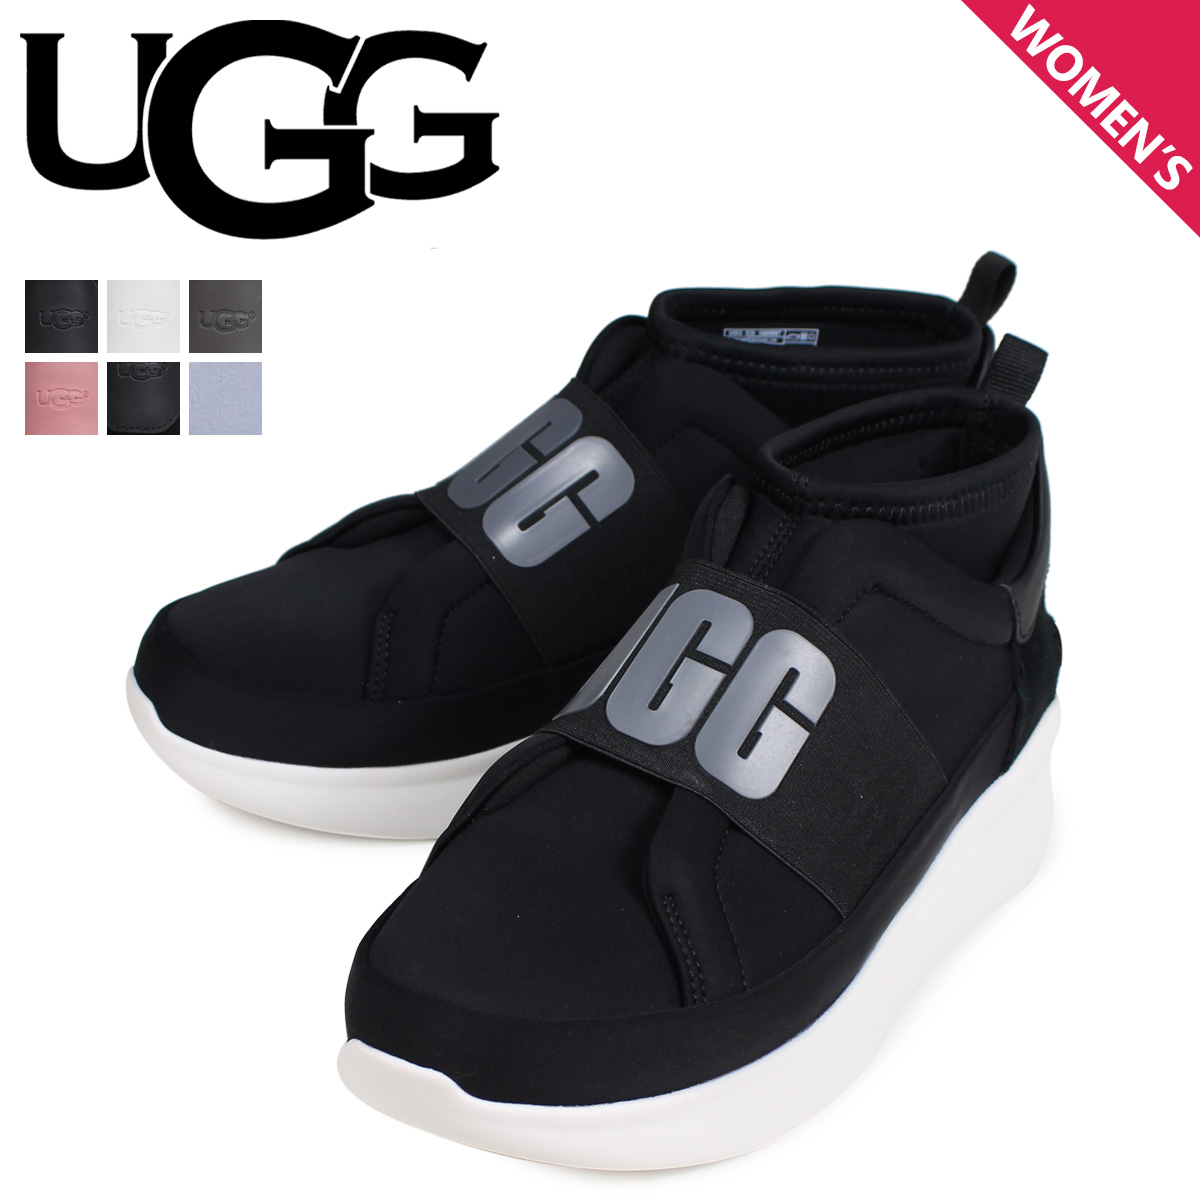 ad9c9613365 アグ UGG sneakers slip-ons current style Lady's WOMENS NEUTRA SNEAKER black  off-white gray pink blue black 1095097 [the 7/12 additional arrival]